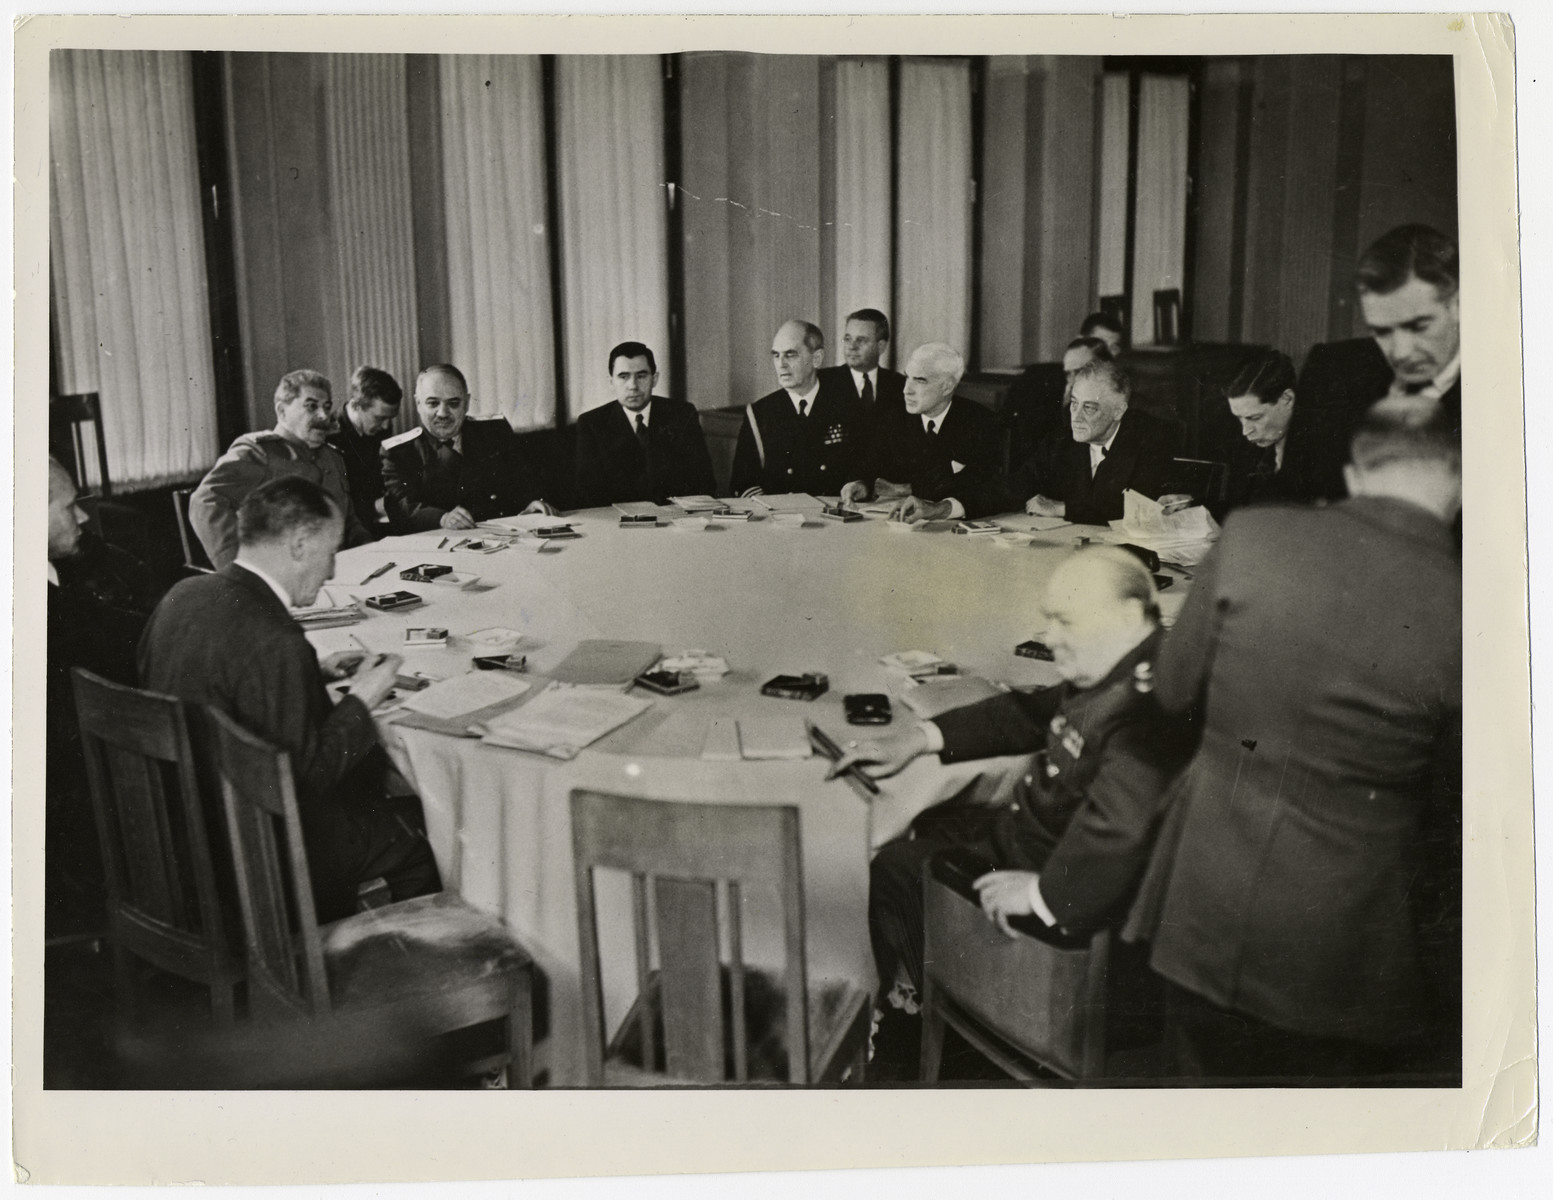 "The three Allied powers sit around a conference table in negotiation during the Yalta conference.  The original caption reads:   ""THE CRIMEA CONFERENCE Soviet Marshal Josef V. Stalin (far left), U.S. President Franklin D. Roosevelt (right) and British Prime Minister Winston S. Churchill (foreground) are shown in a general view of the conference table during a meeting of the three Allied powers in February, 1945, at Yalta, Crimea.  U.S. Signal Corps"""